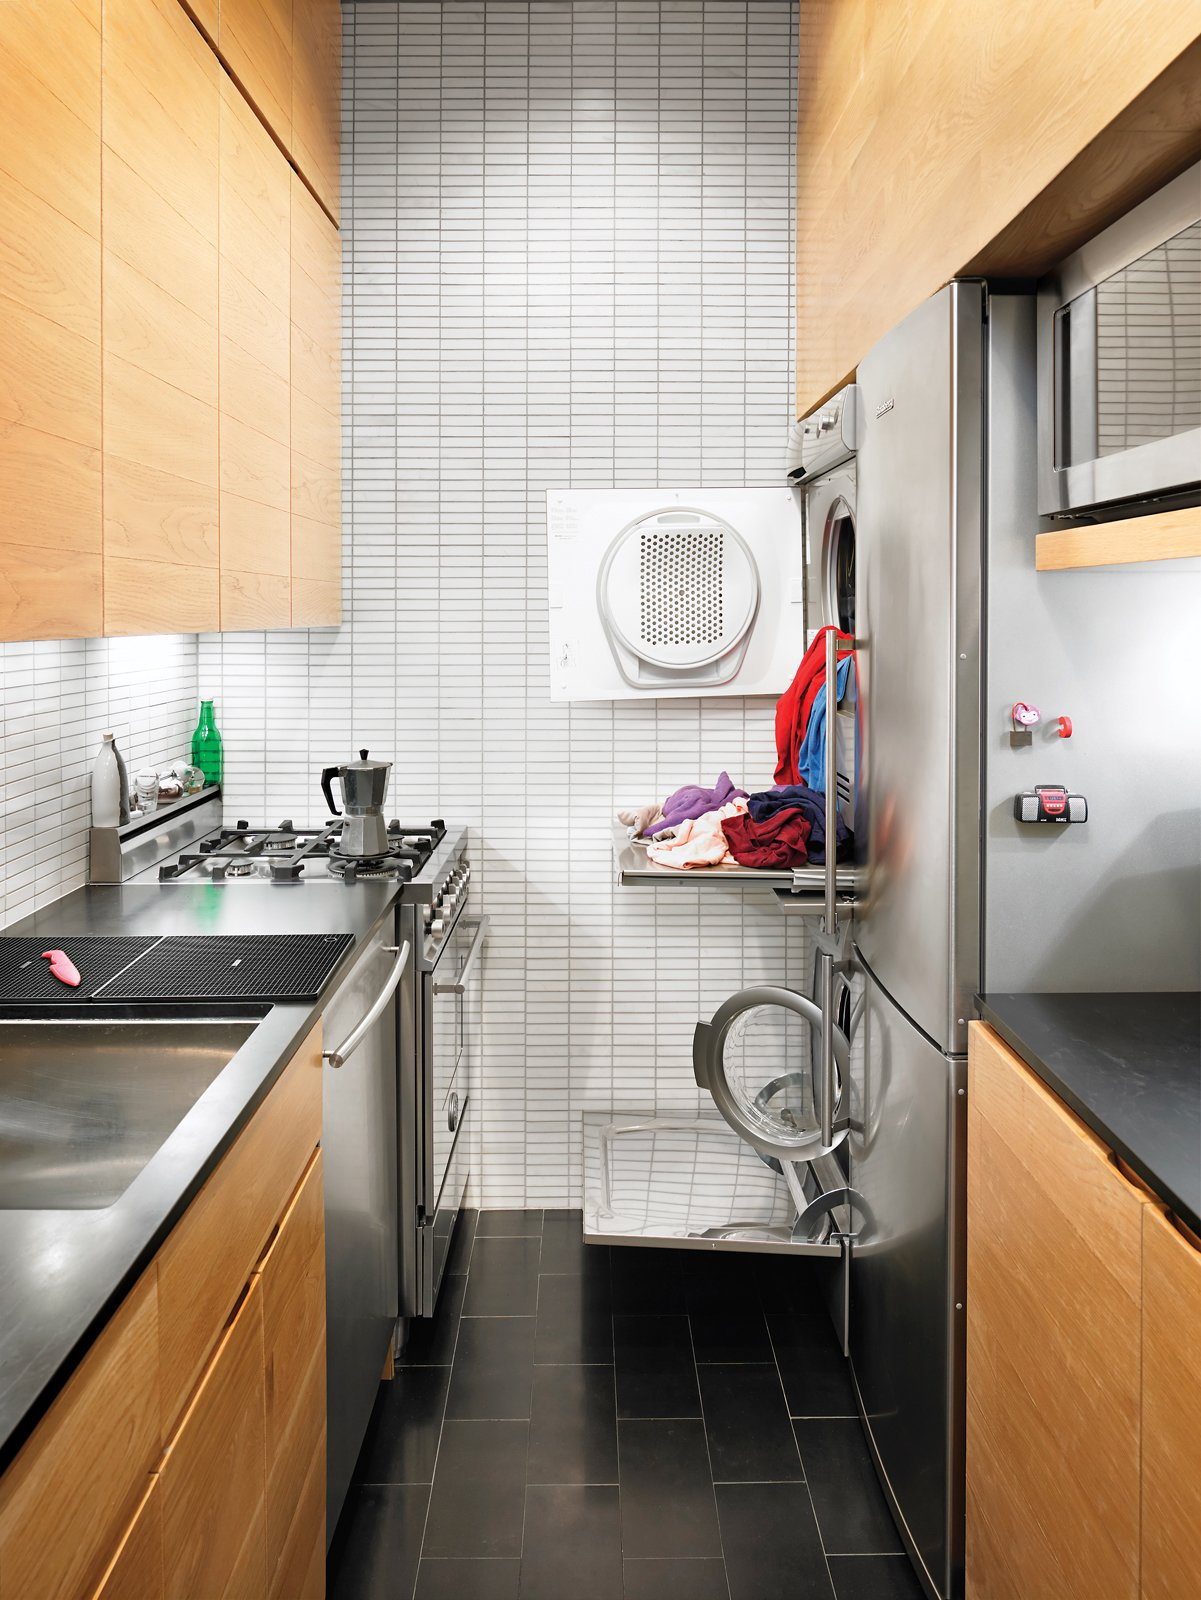 Small Kitchen With Washer And Dryer